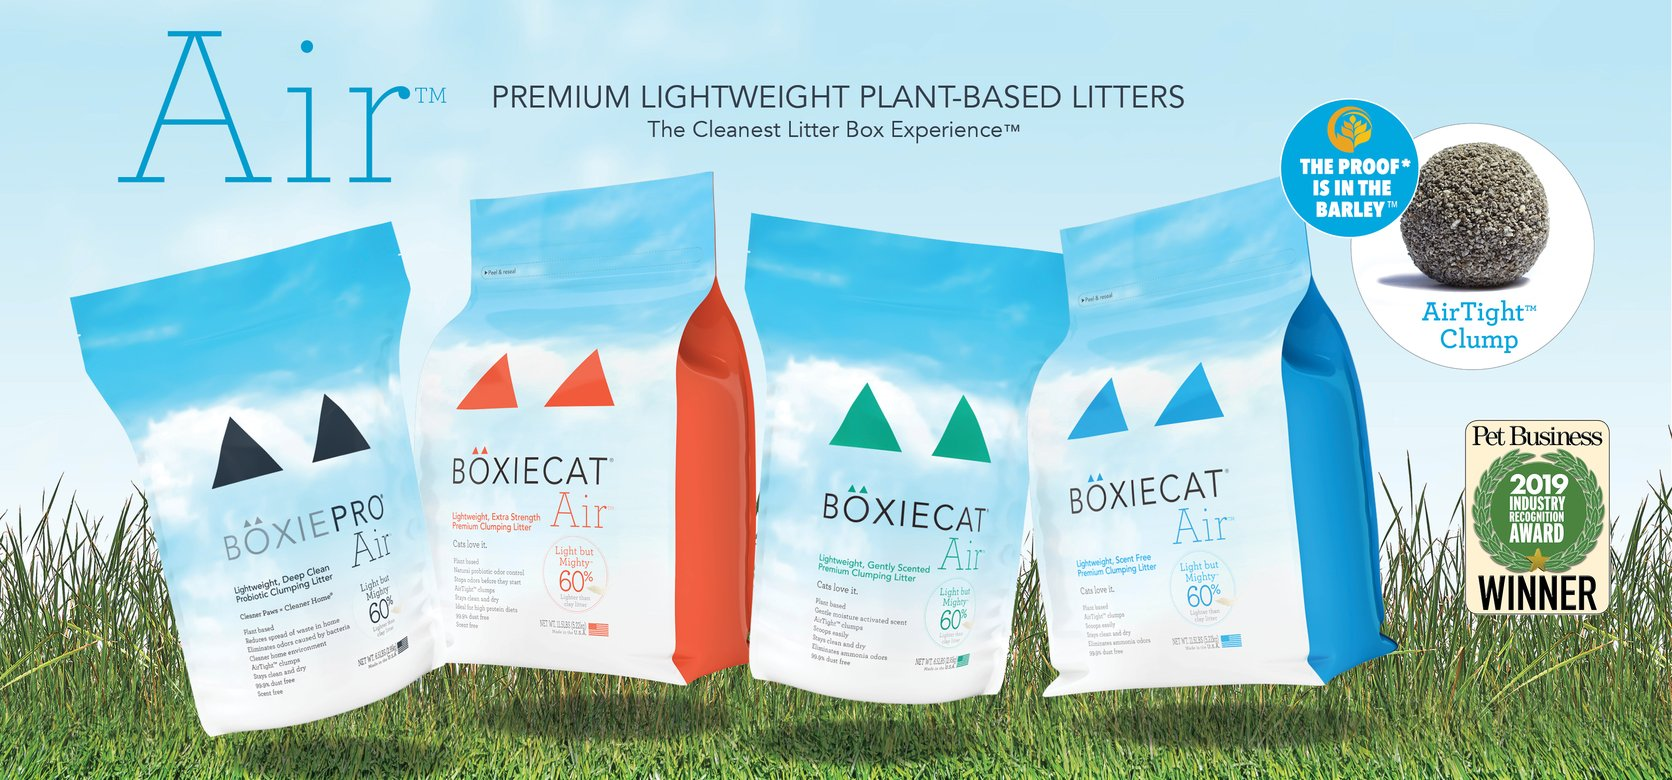 Boxiecat Air Lightweight Cat Litter